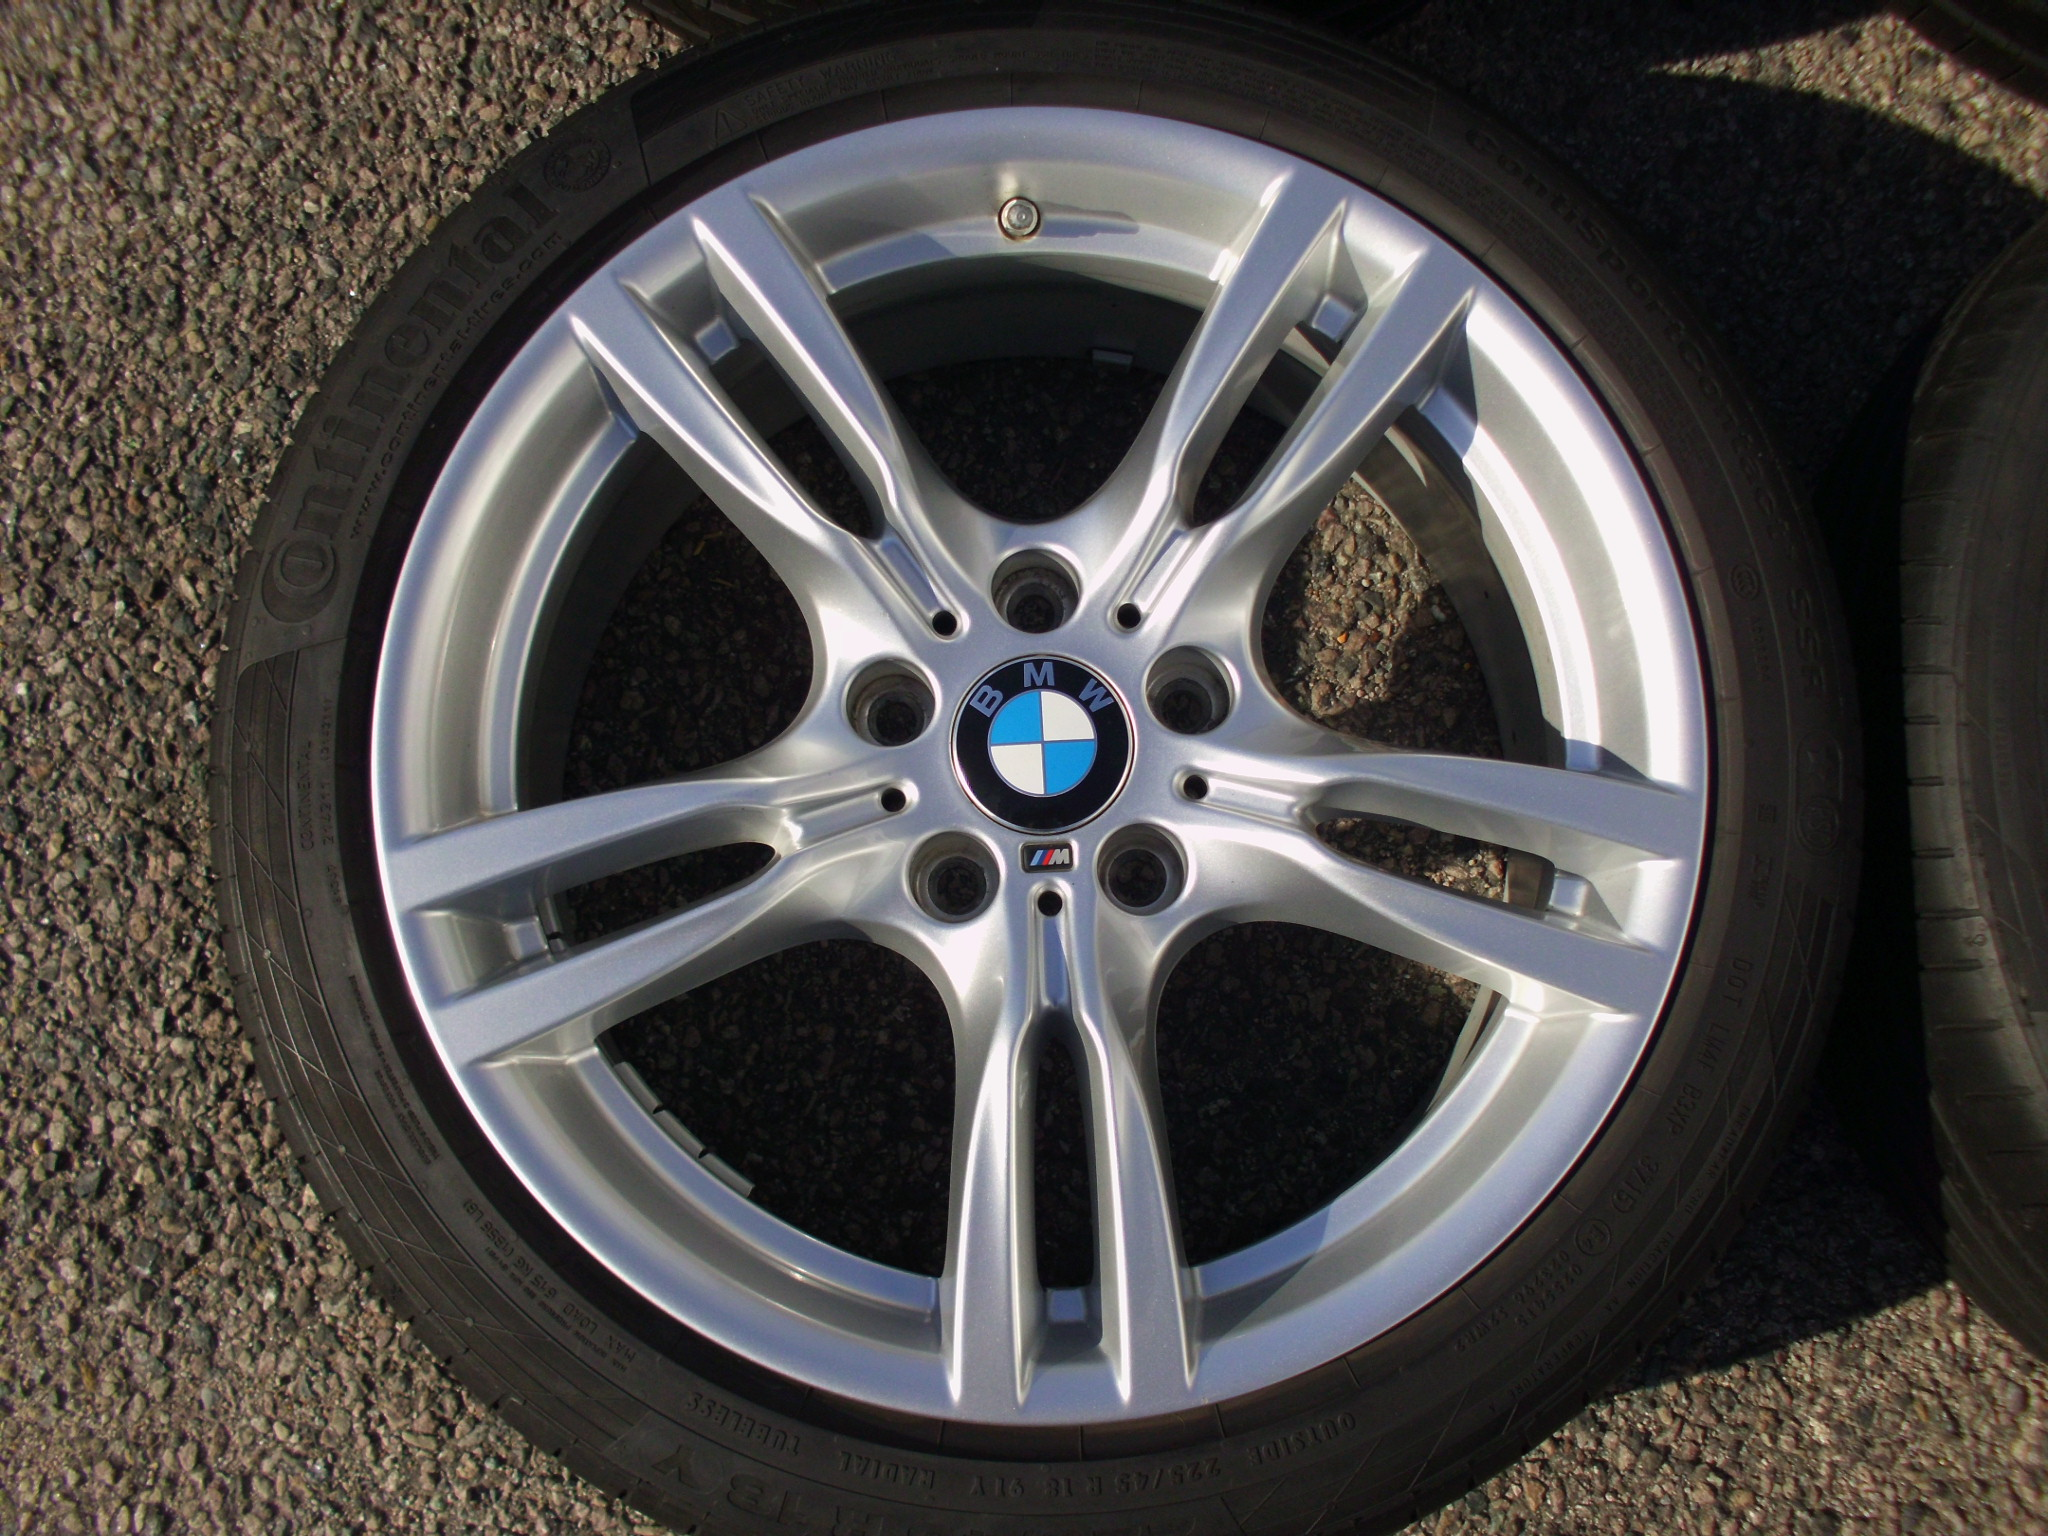 "USED 18"" GENUINE STYLE 400 M SPORT ALLOY WHEELS, WIDER REARS,VGC, INC VG CONTINENTAL RUNFLAT TYRES + TPMS"